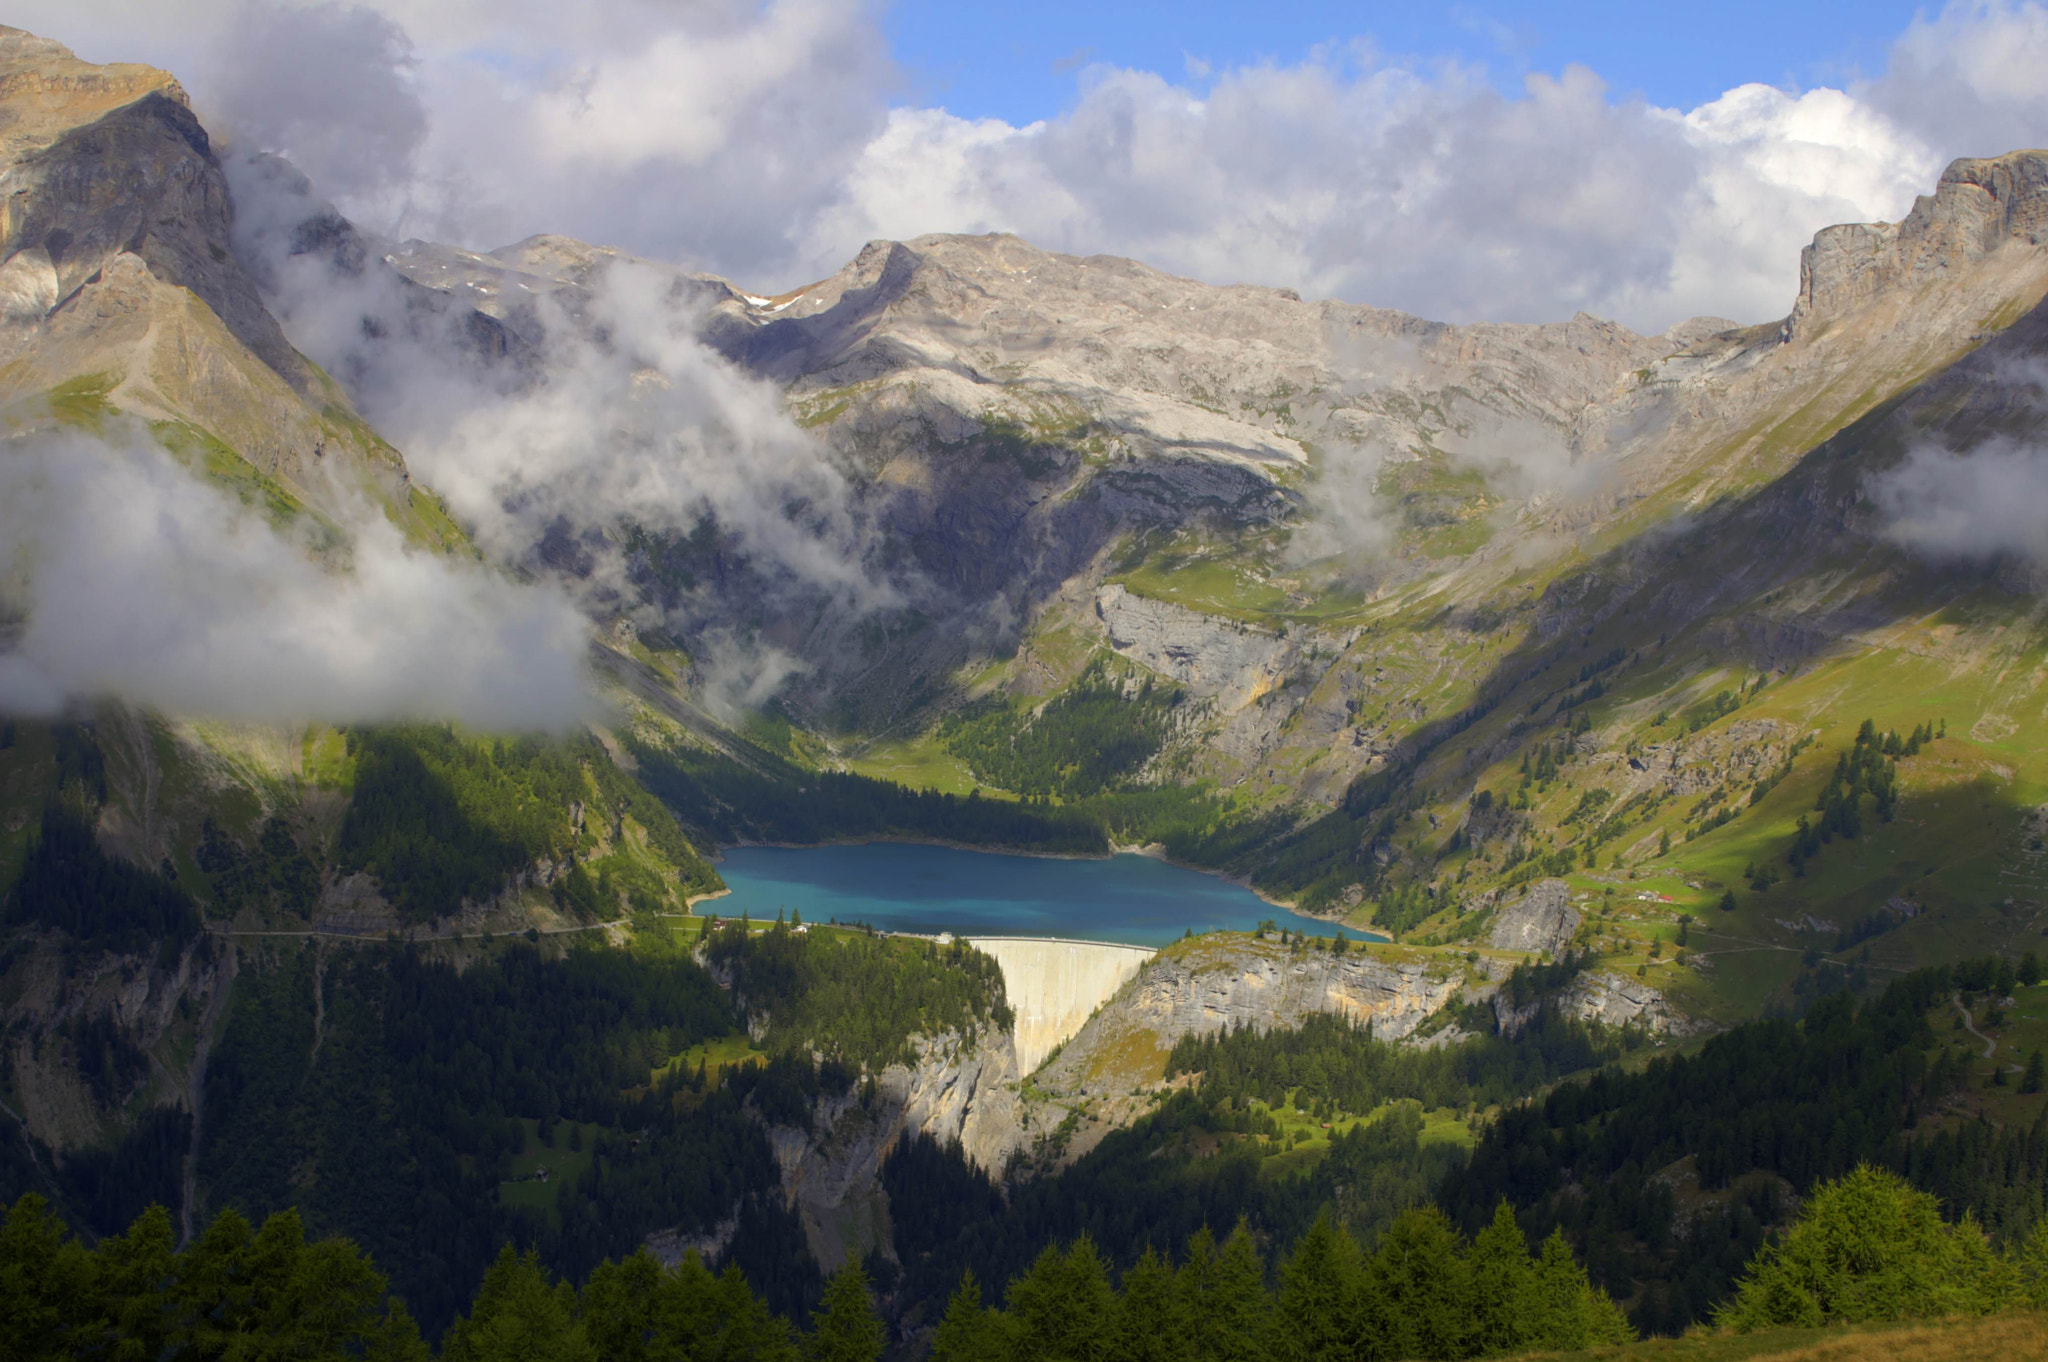 Photograph Lake of Tzeusier by Stephan Scherz on 500px